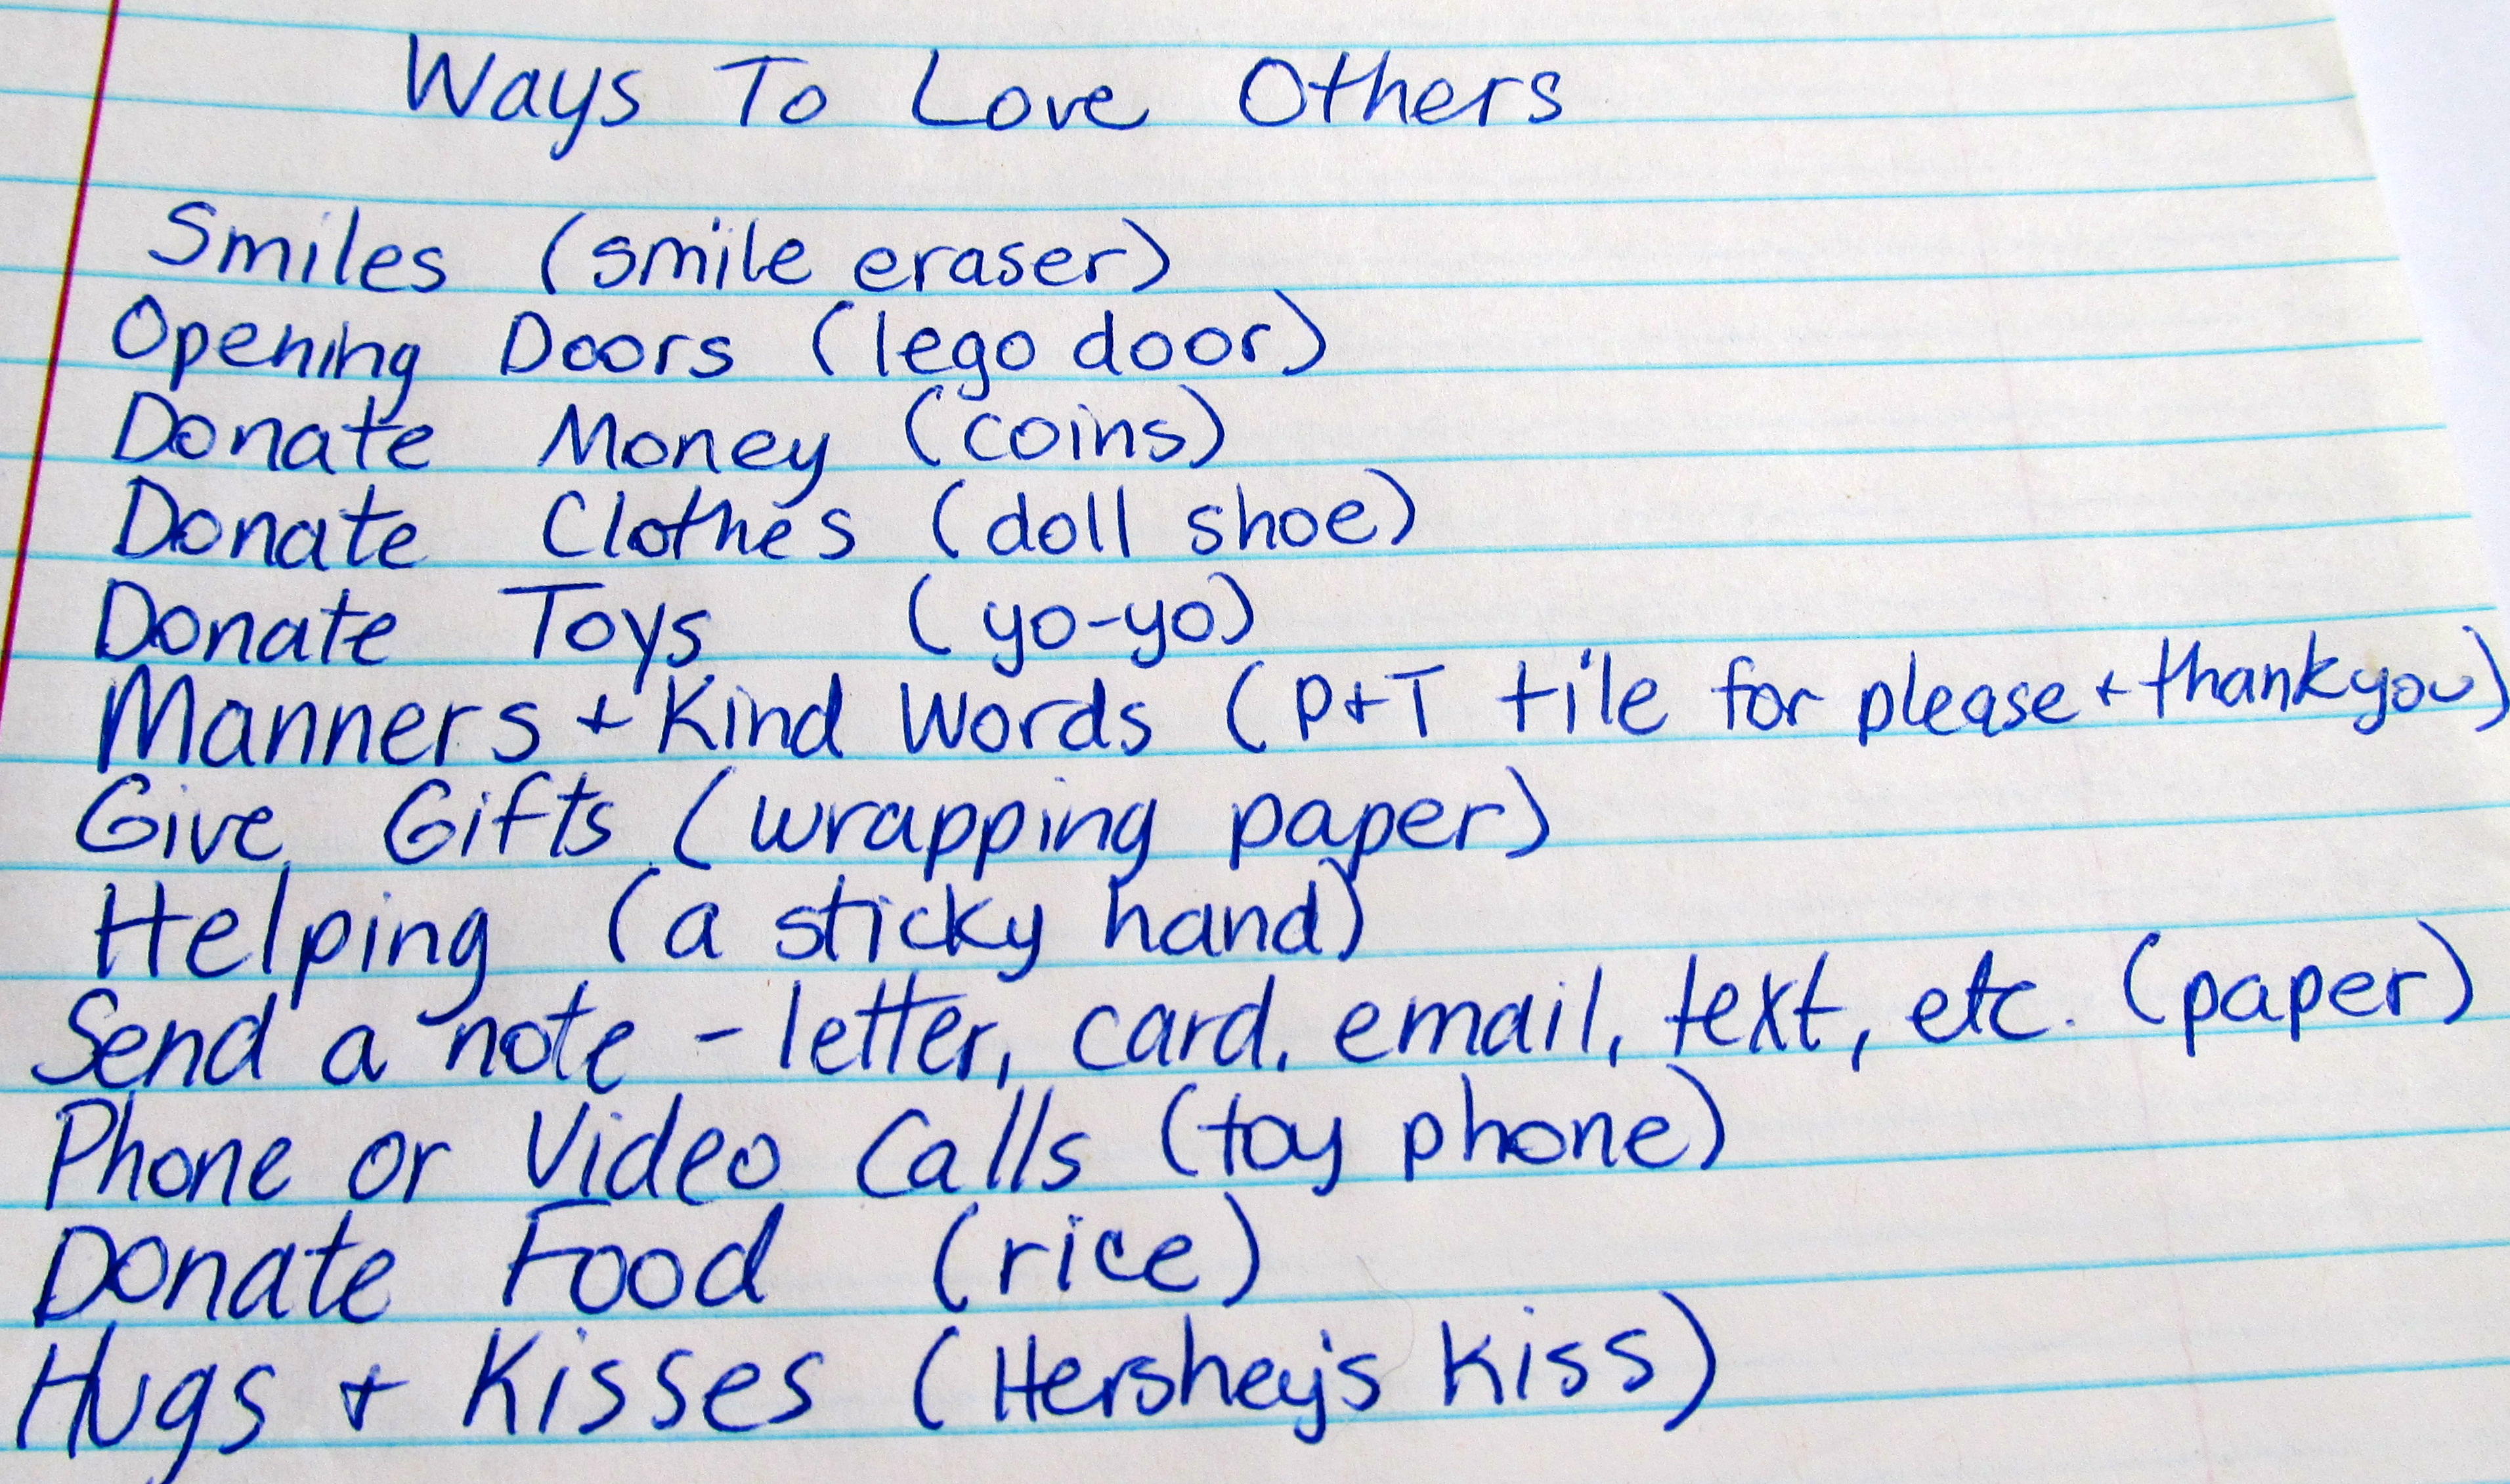 how to show your love to others